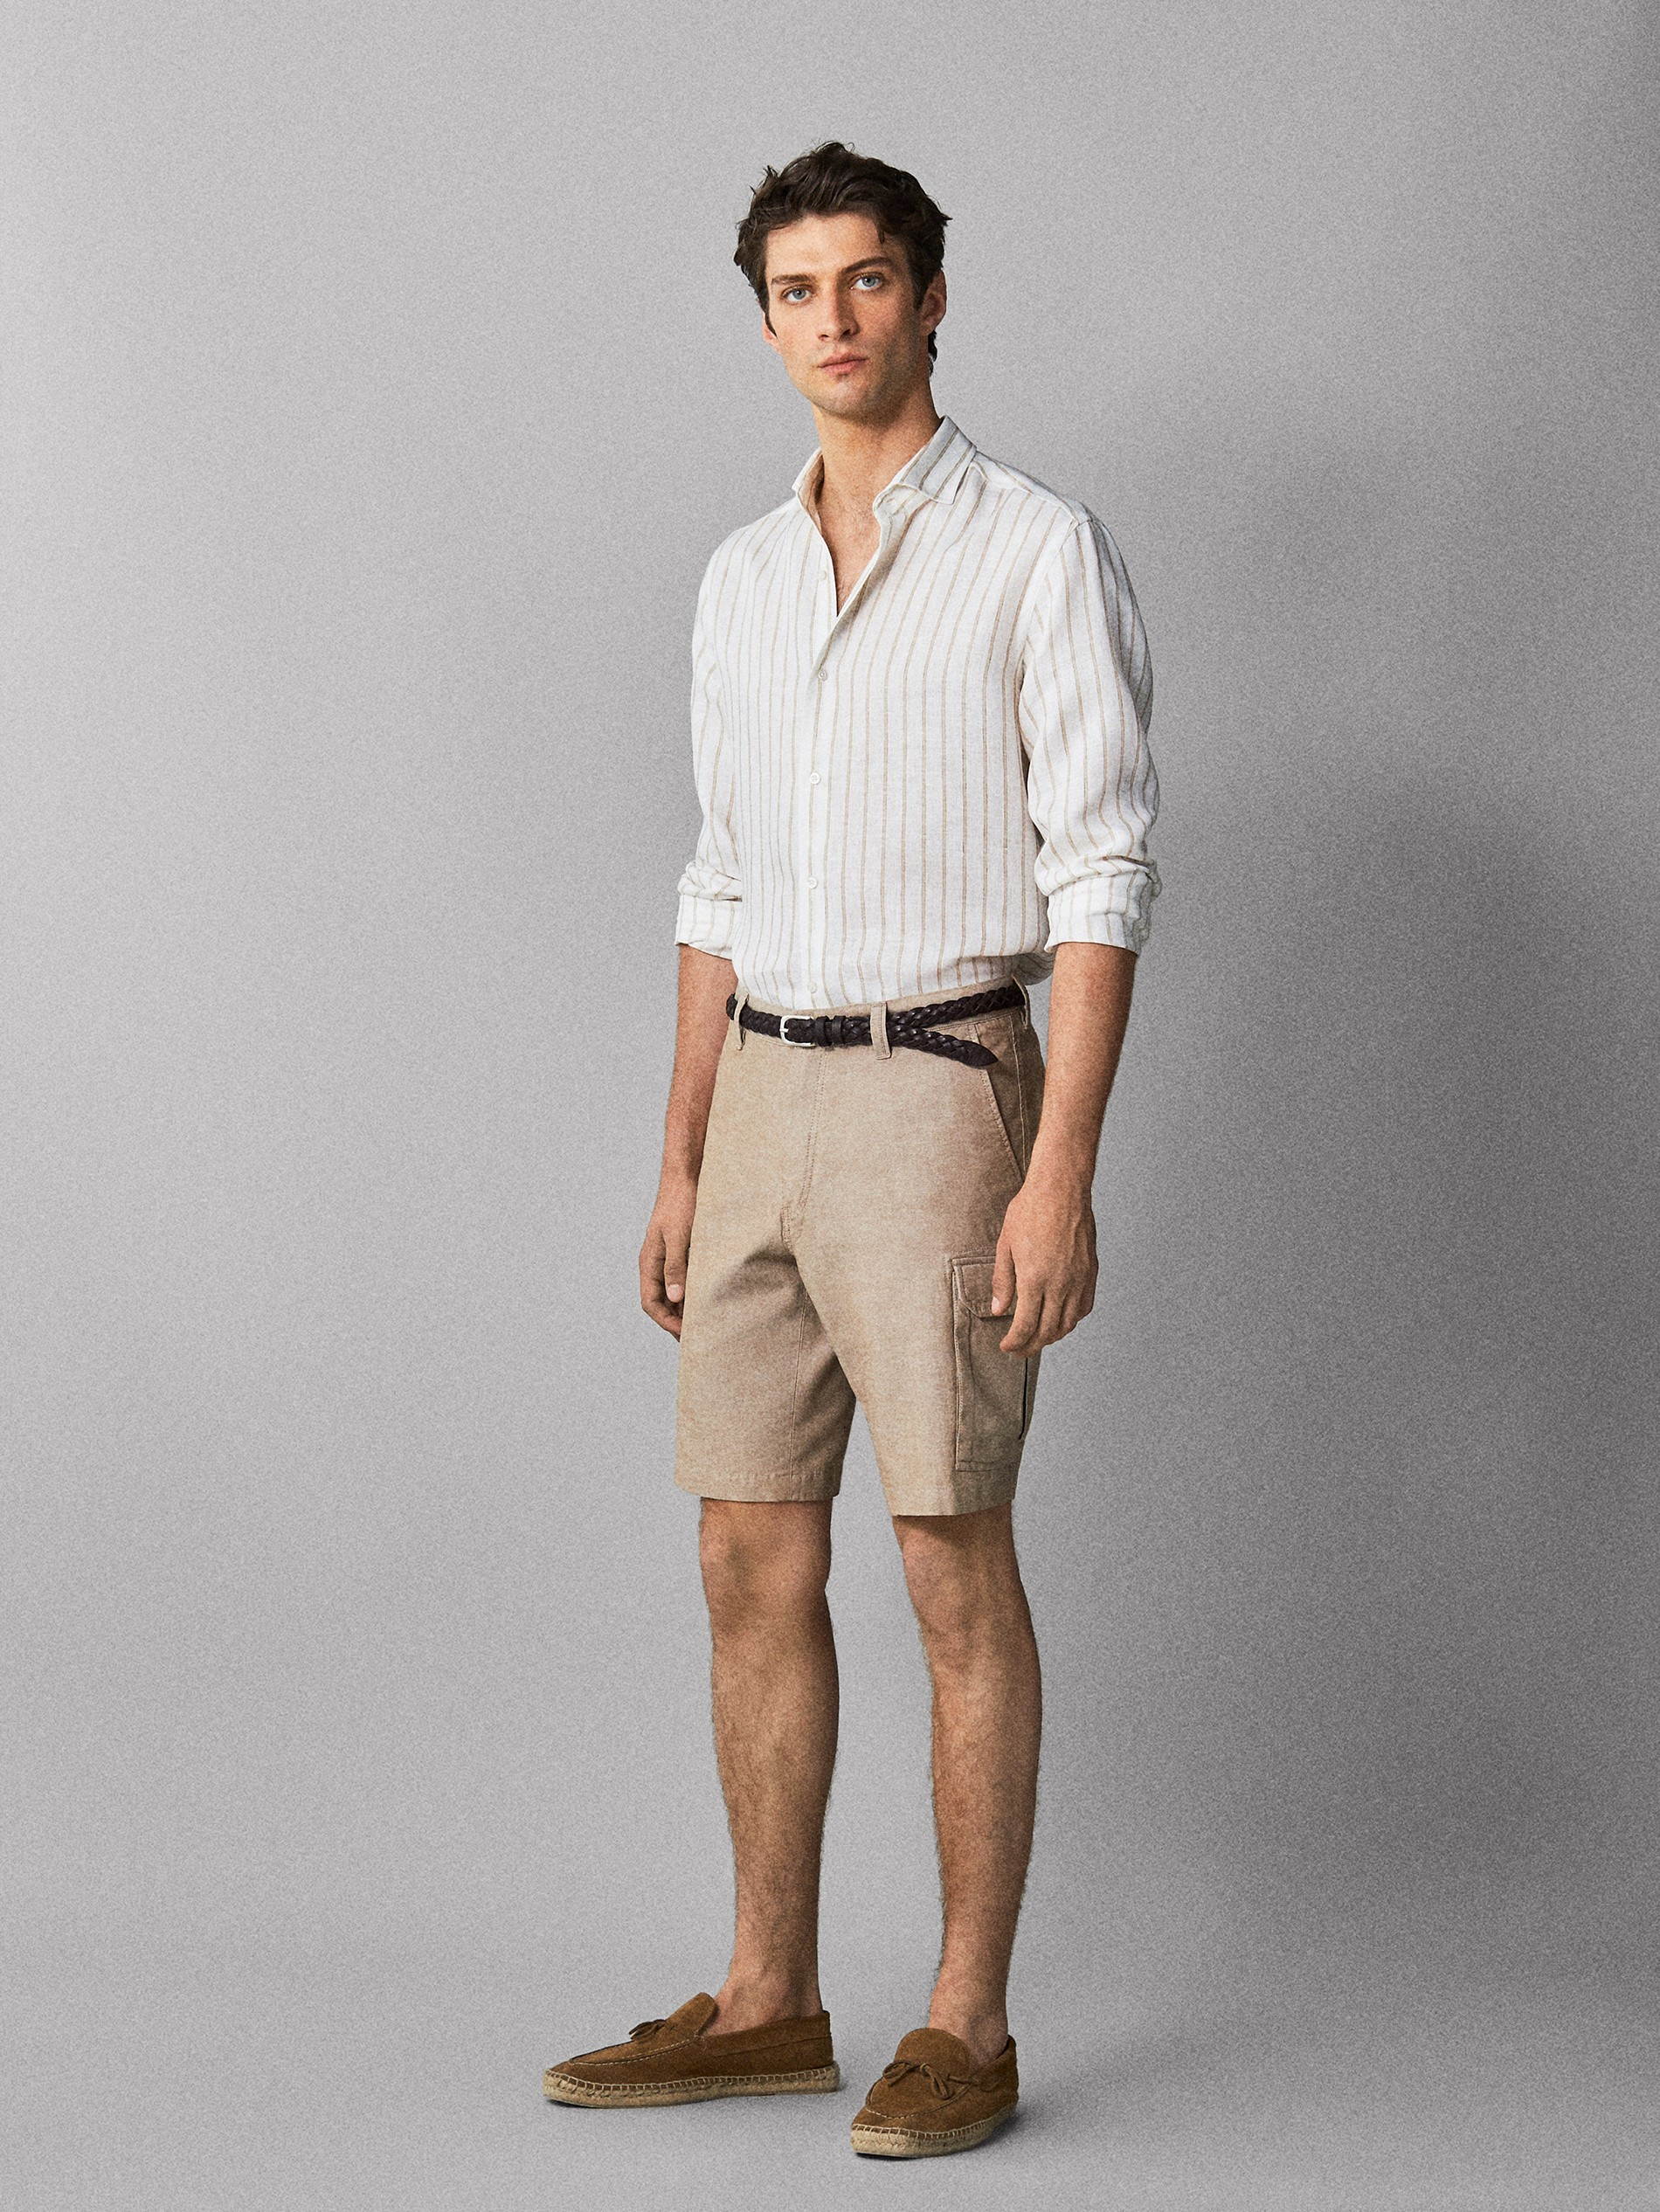 How to Create the Best Men's Beach Holiday Outfits ...